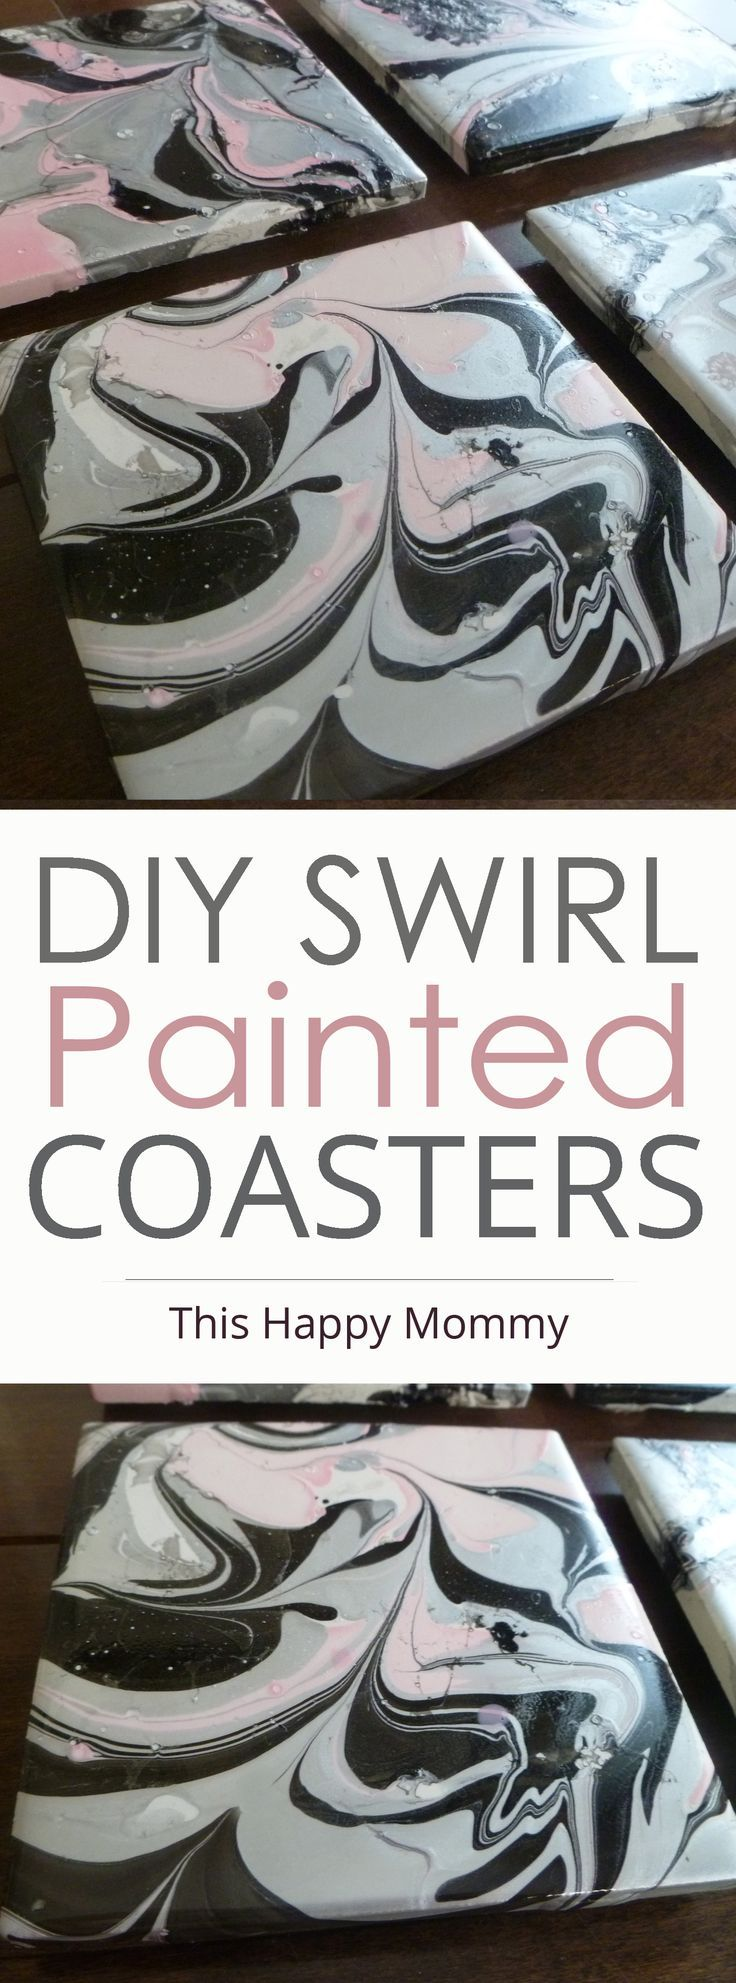 DIY Swirl Painted Coasters -- With a swirl painted design, these DIY coasters are decorated with nail polish. | http://thishappymommy.com